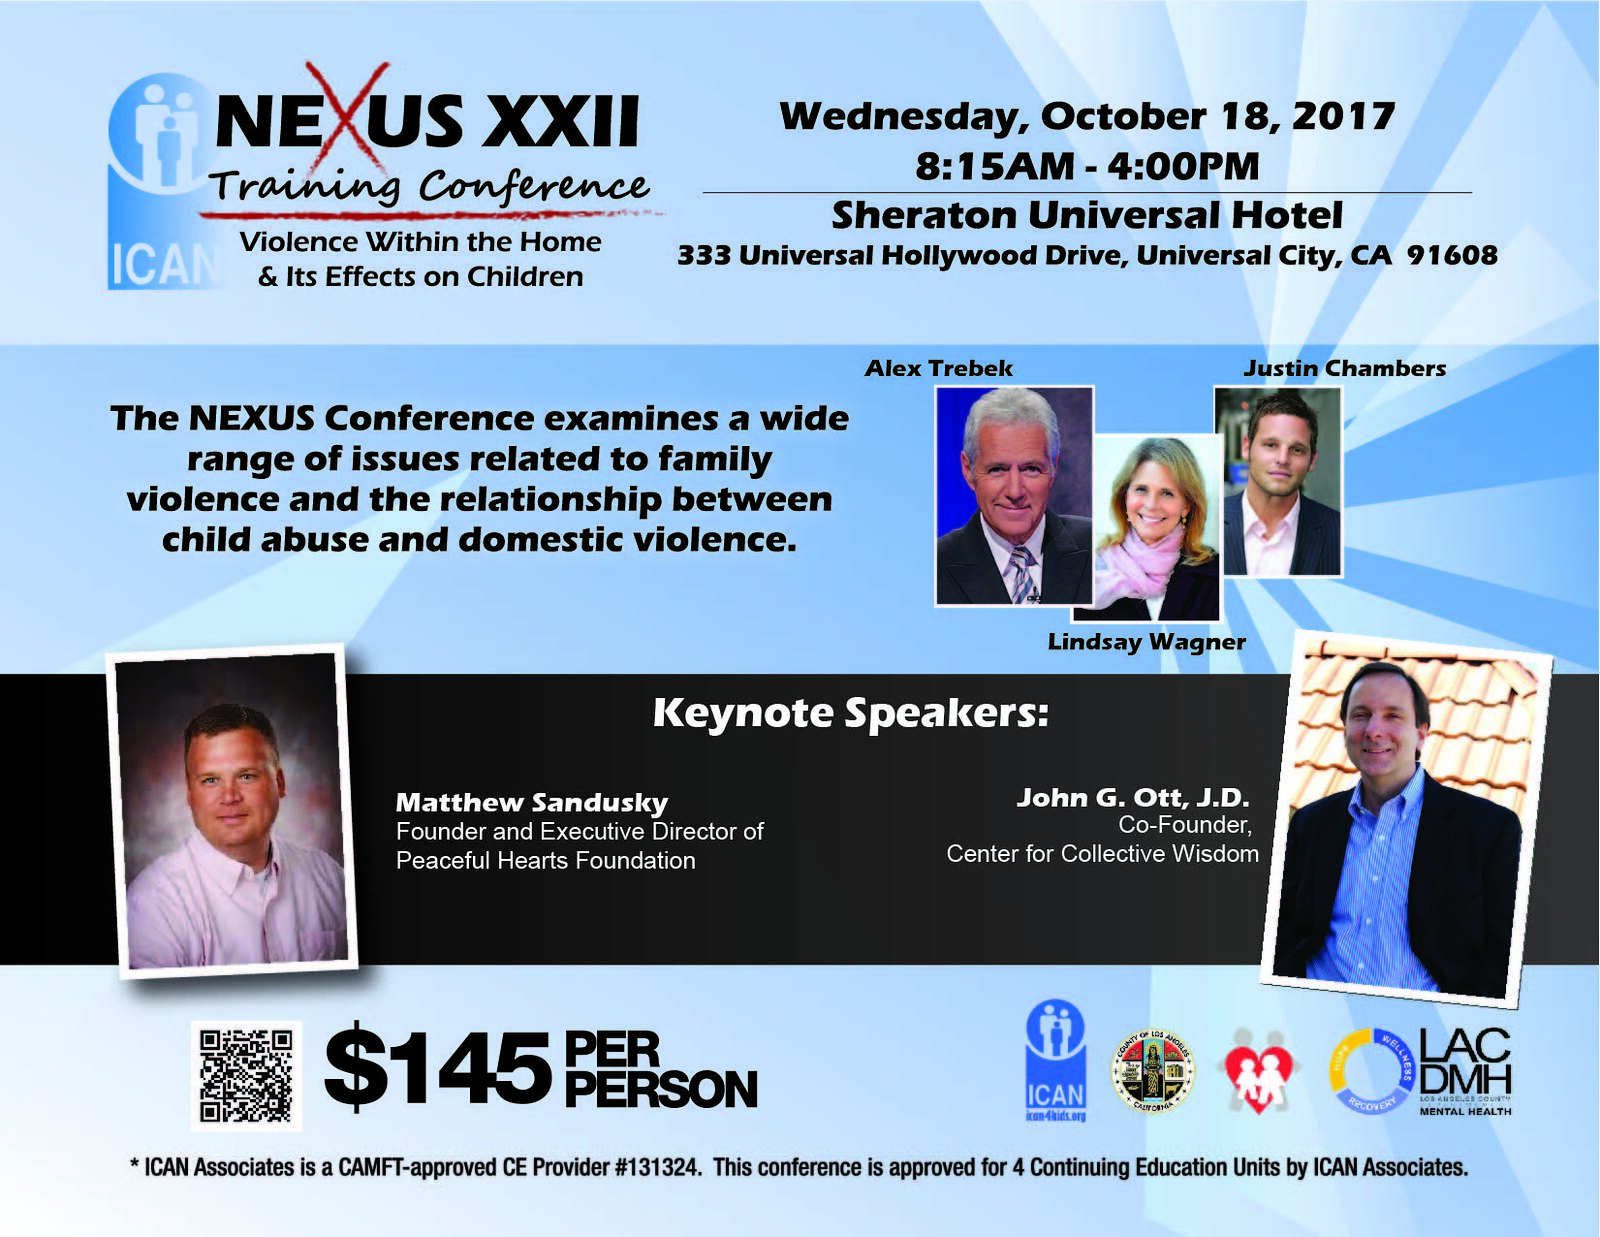 Justin Chambers Online » Justin to Appear at the Nexus XXII Training ...